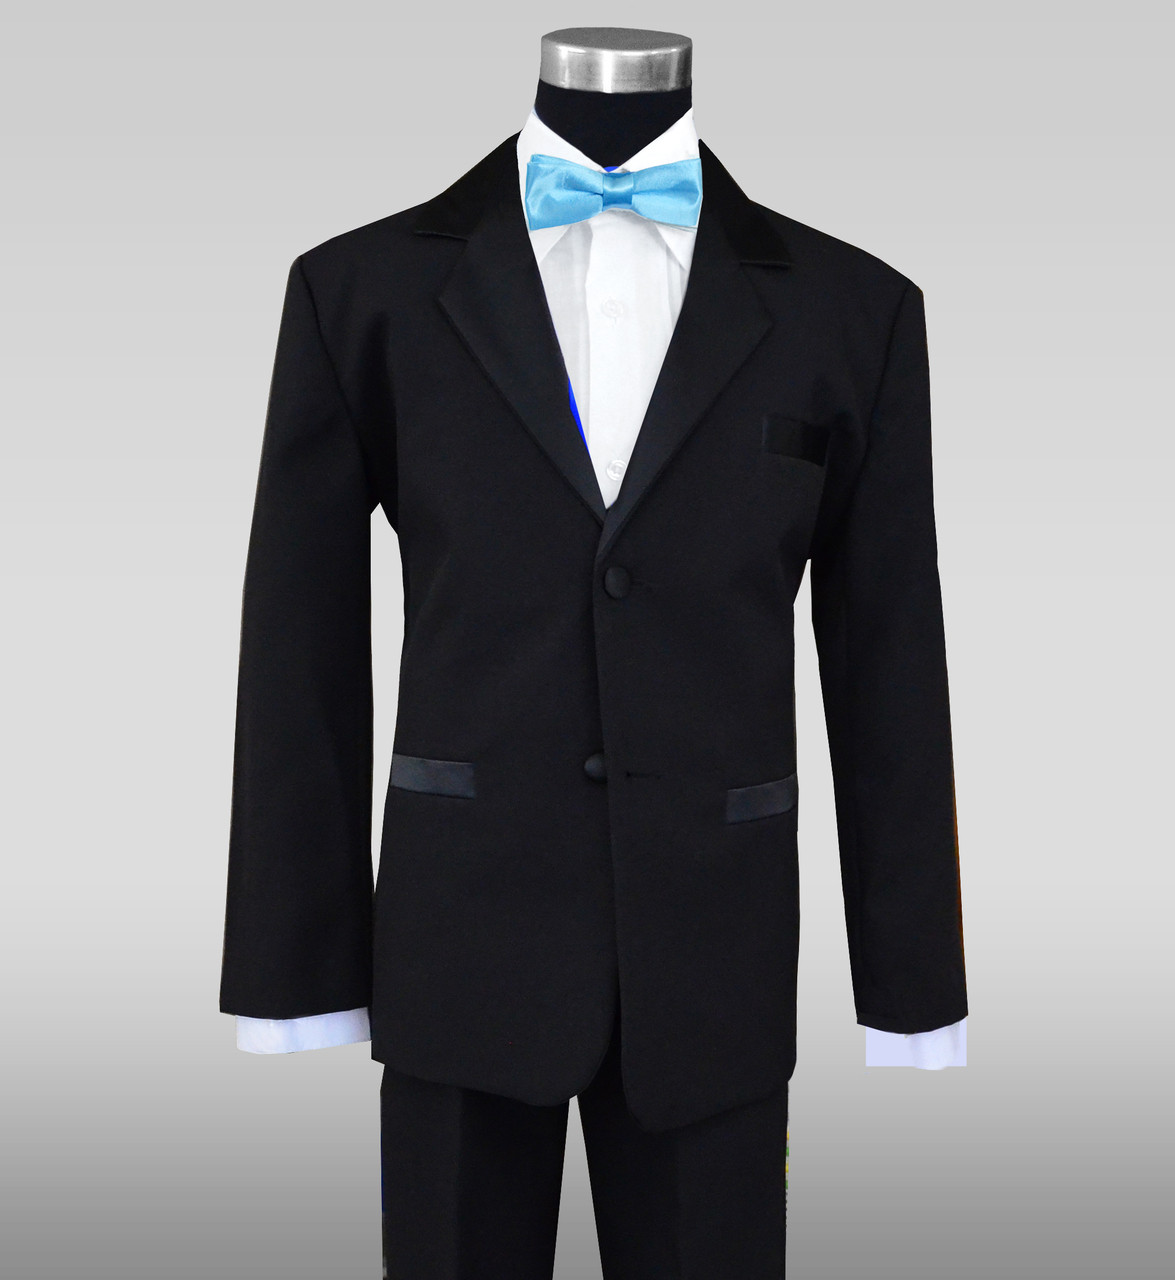 3c2d1a825 Boys Black Tuxedo with Baby Blue Batwing Bow Tie